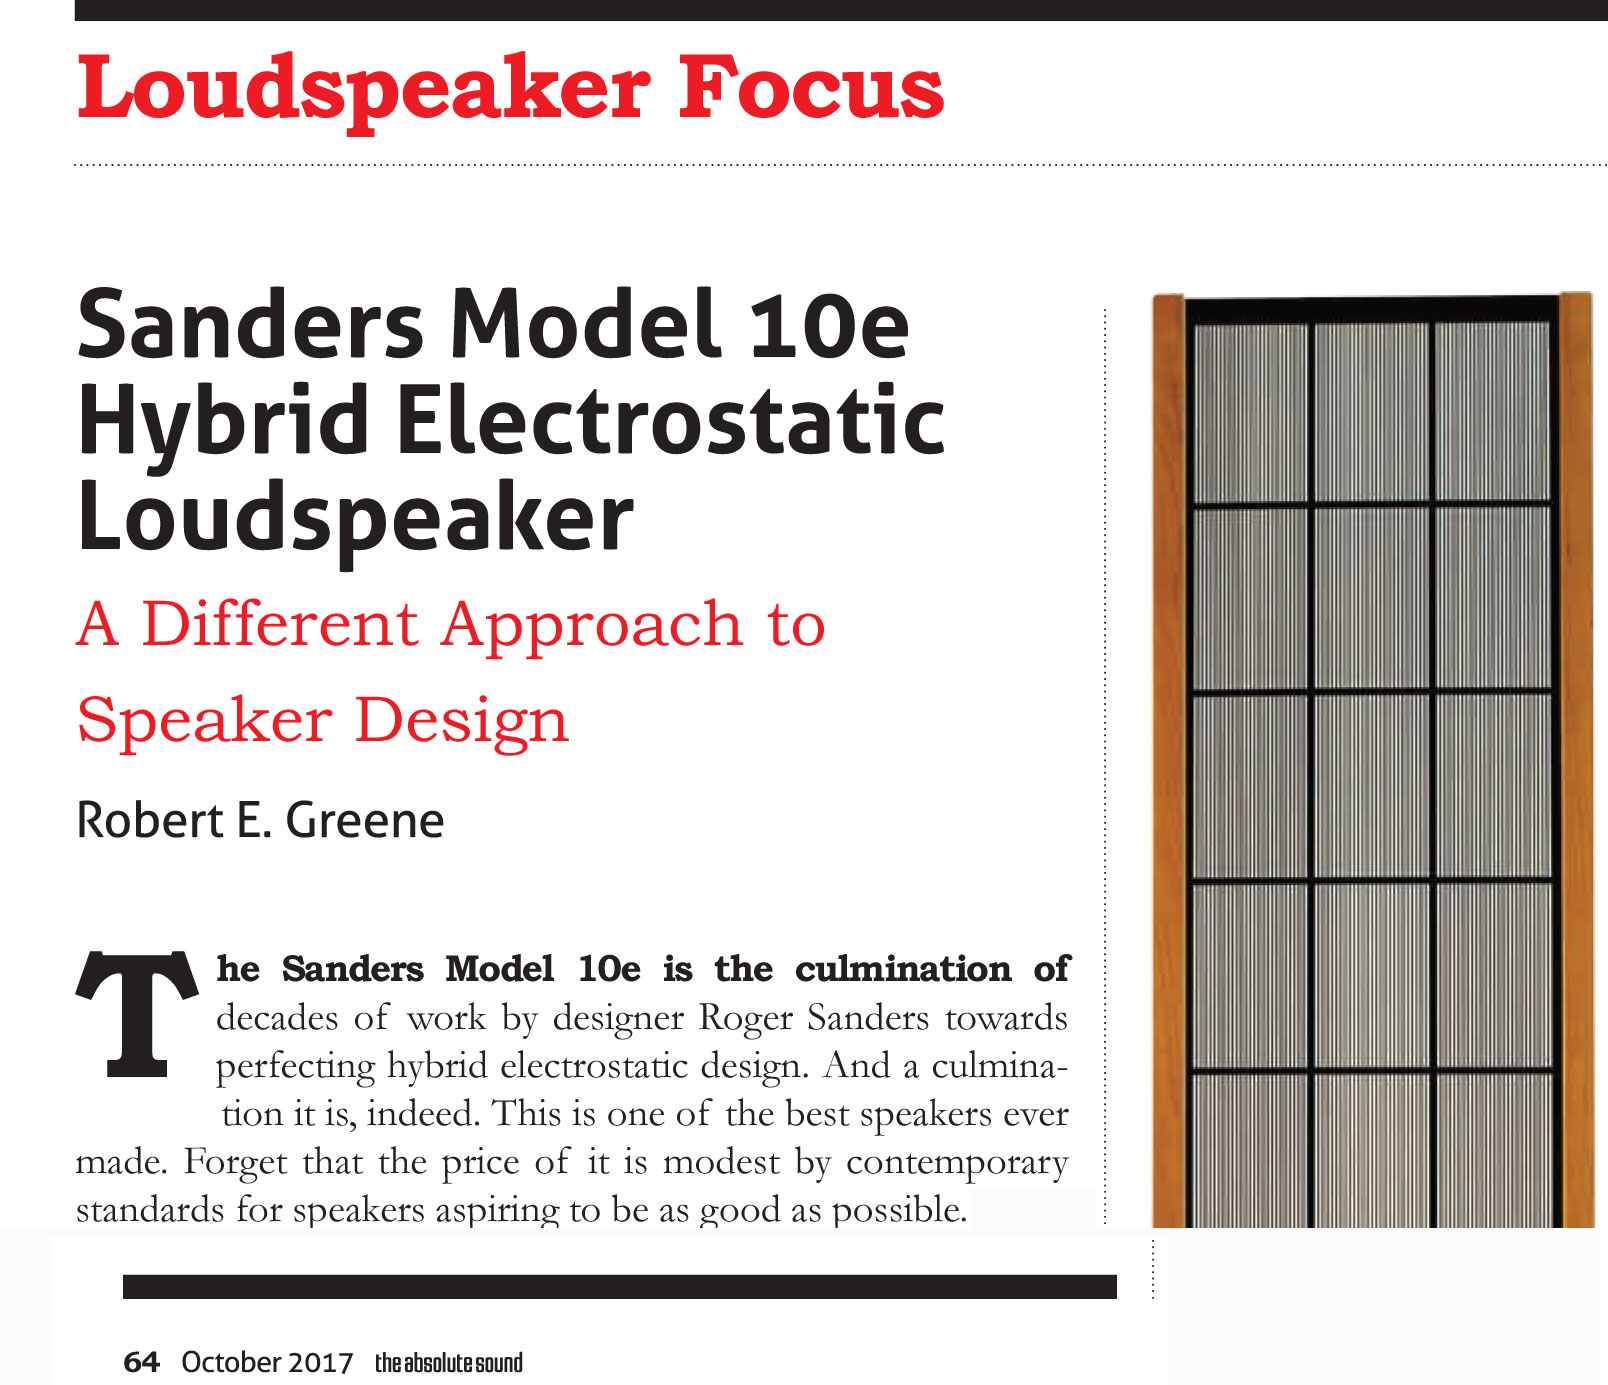 The Sanders Model 10e is the culmination of decades of work by designer Roger Sanders towards perfecting hybrid electrostatic design. And a culmination it is, indeed. This is one of the best speakers ever made. Forget that the price of it is modest by contemporary standards for speakers aspiring to be as good as possible.